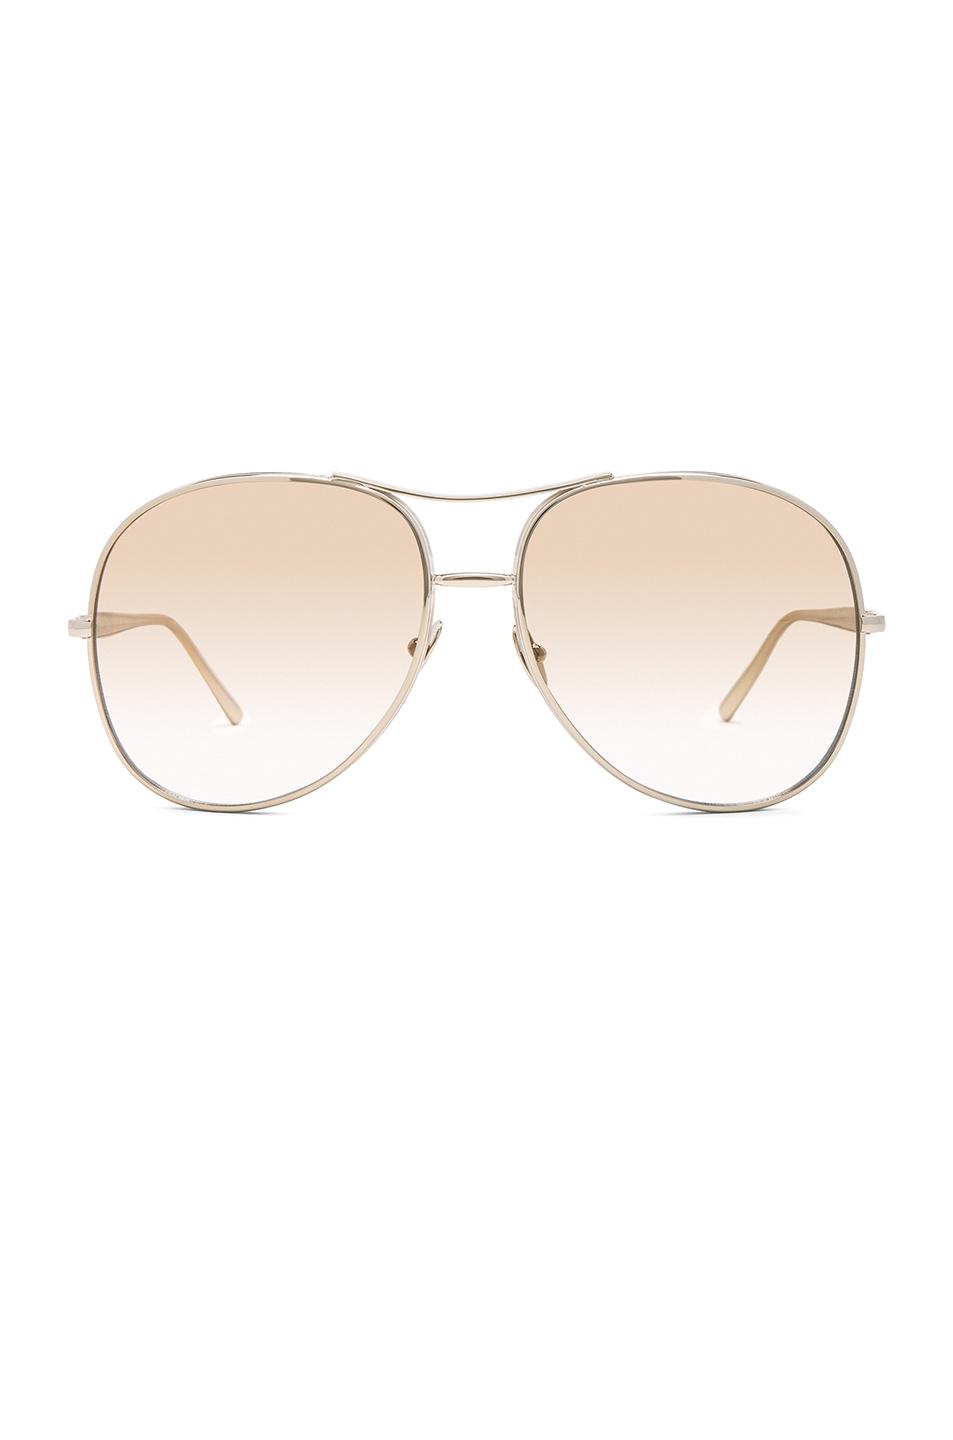 ChloÉ Chloe Nolla Aviator In Metallics,Brown